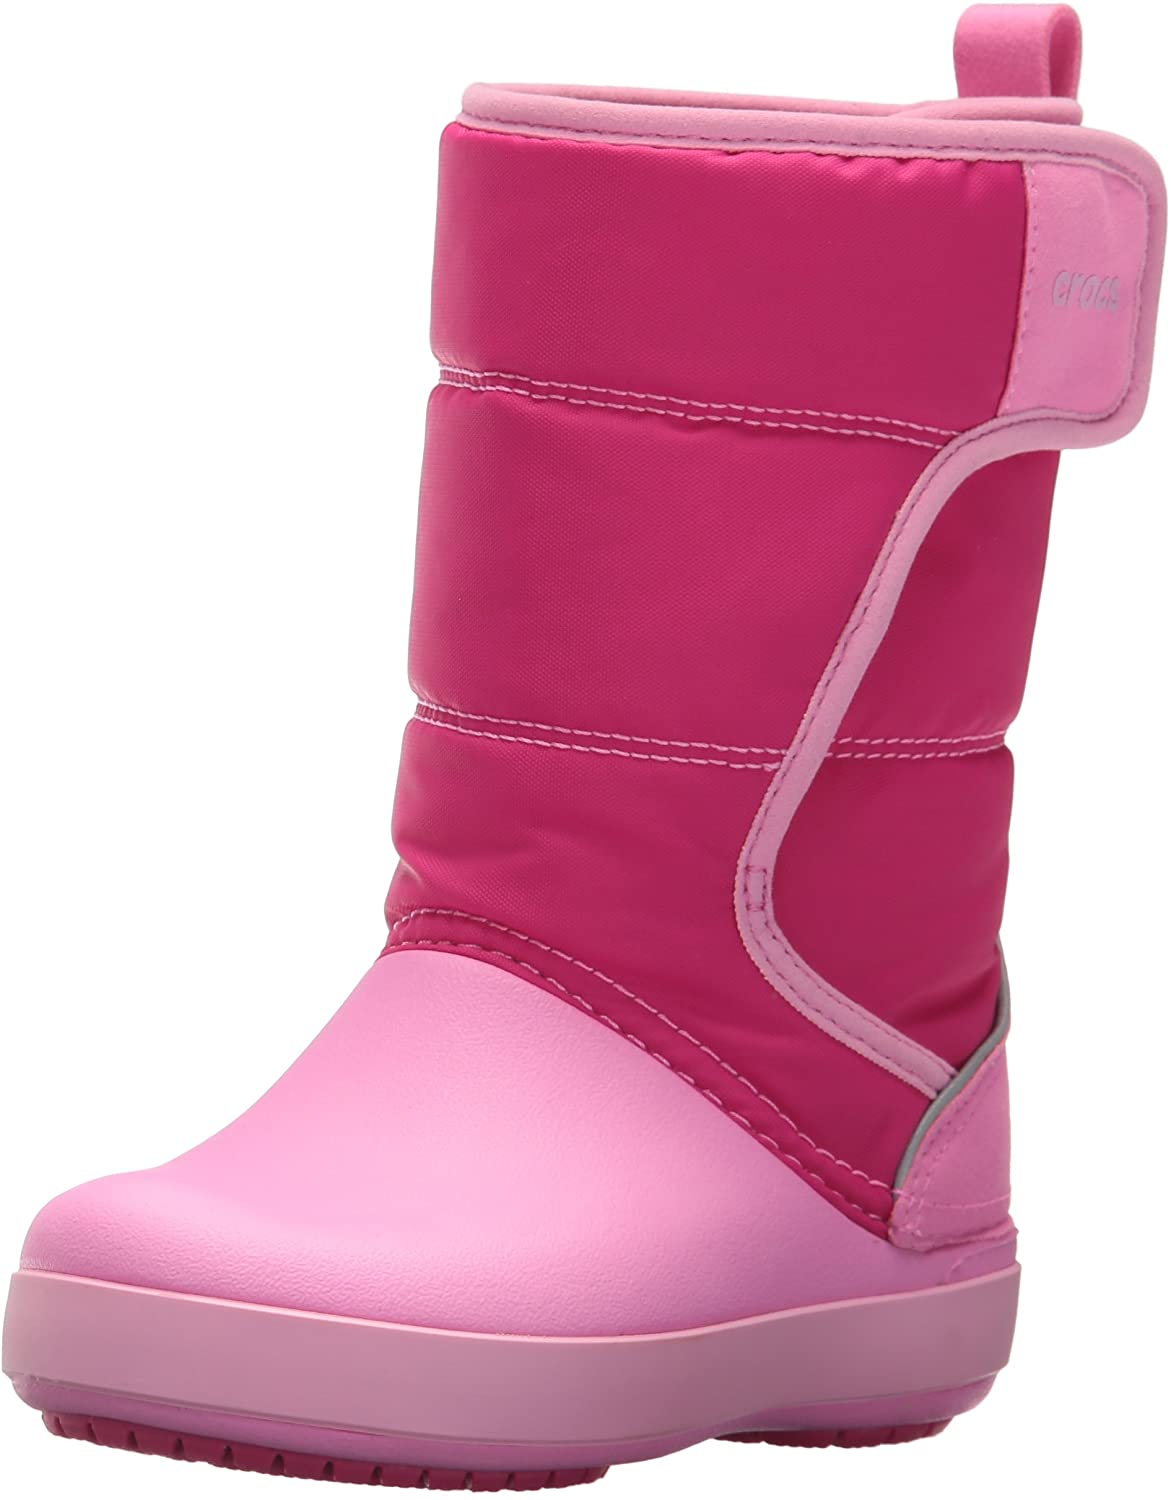 crocs LodgePoint Snow Boot K, Candy Pink/Party Pink, 3 M US Little Kid